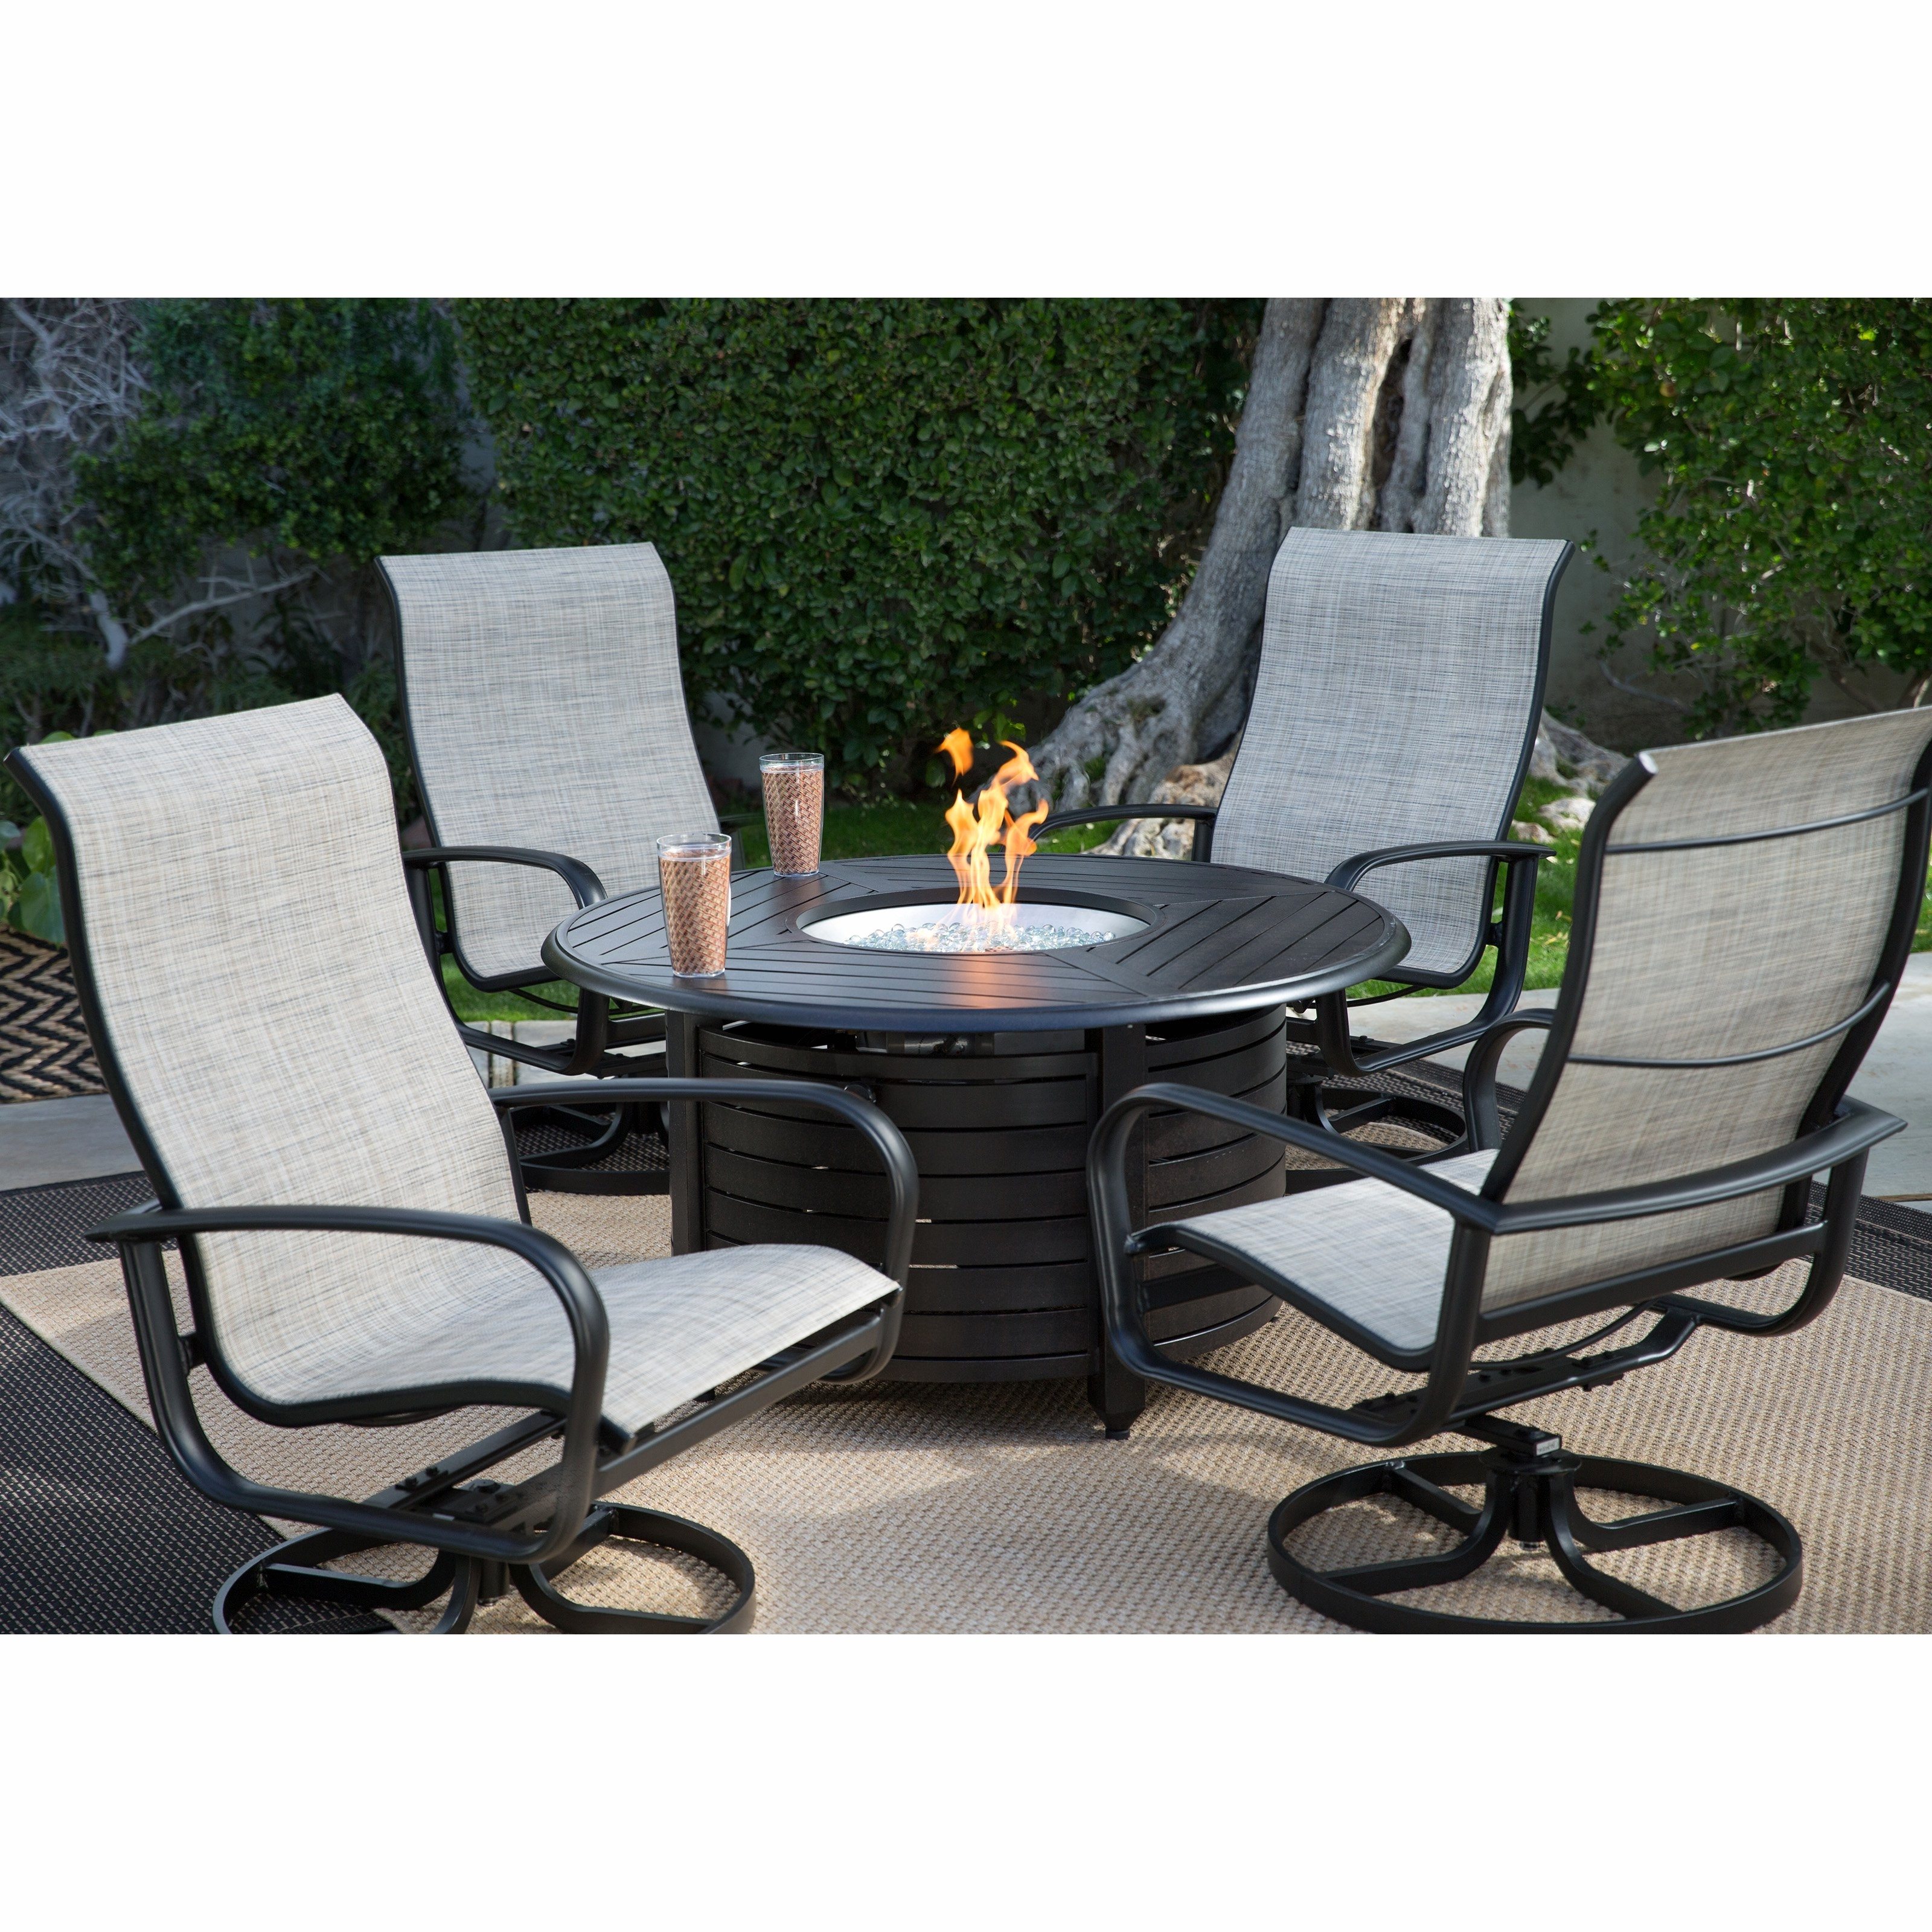 Trendy Patio Furniture With Gas Fire Pit Elegant Conversation Sets Outdoor Intended For Patio Conversation Sets With Gas Fire Pit (View 12 of 15)